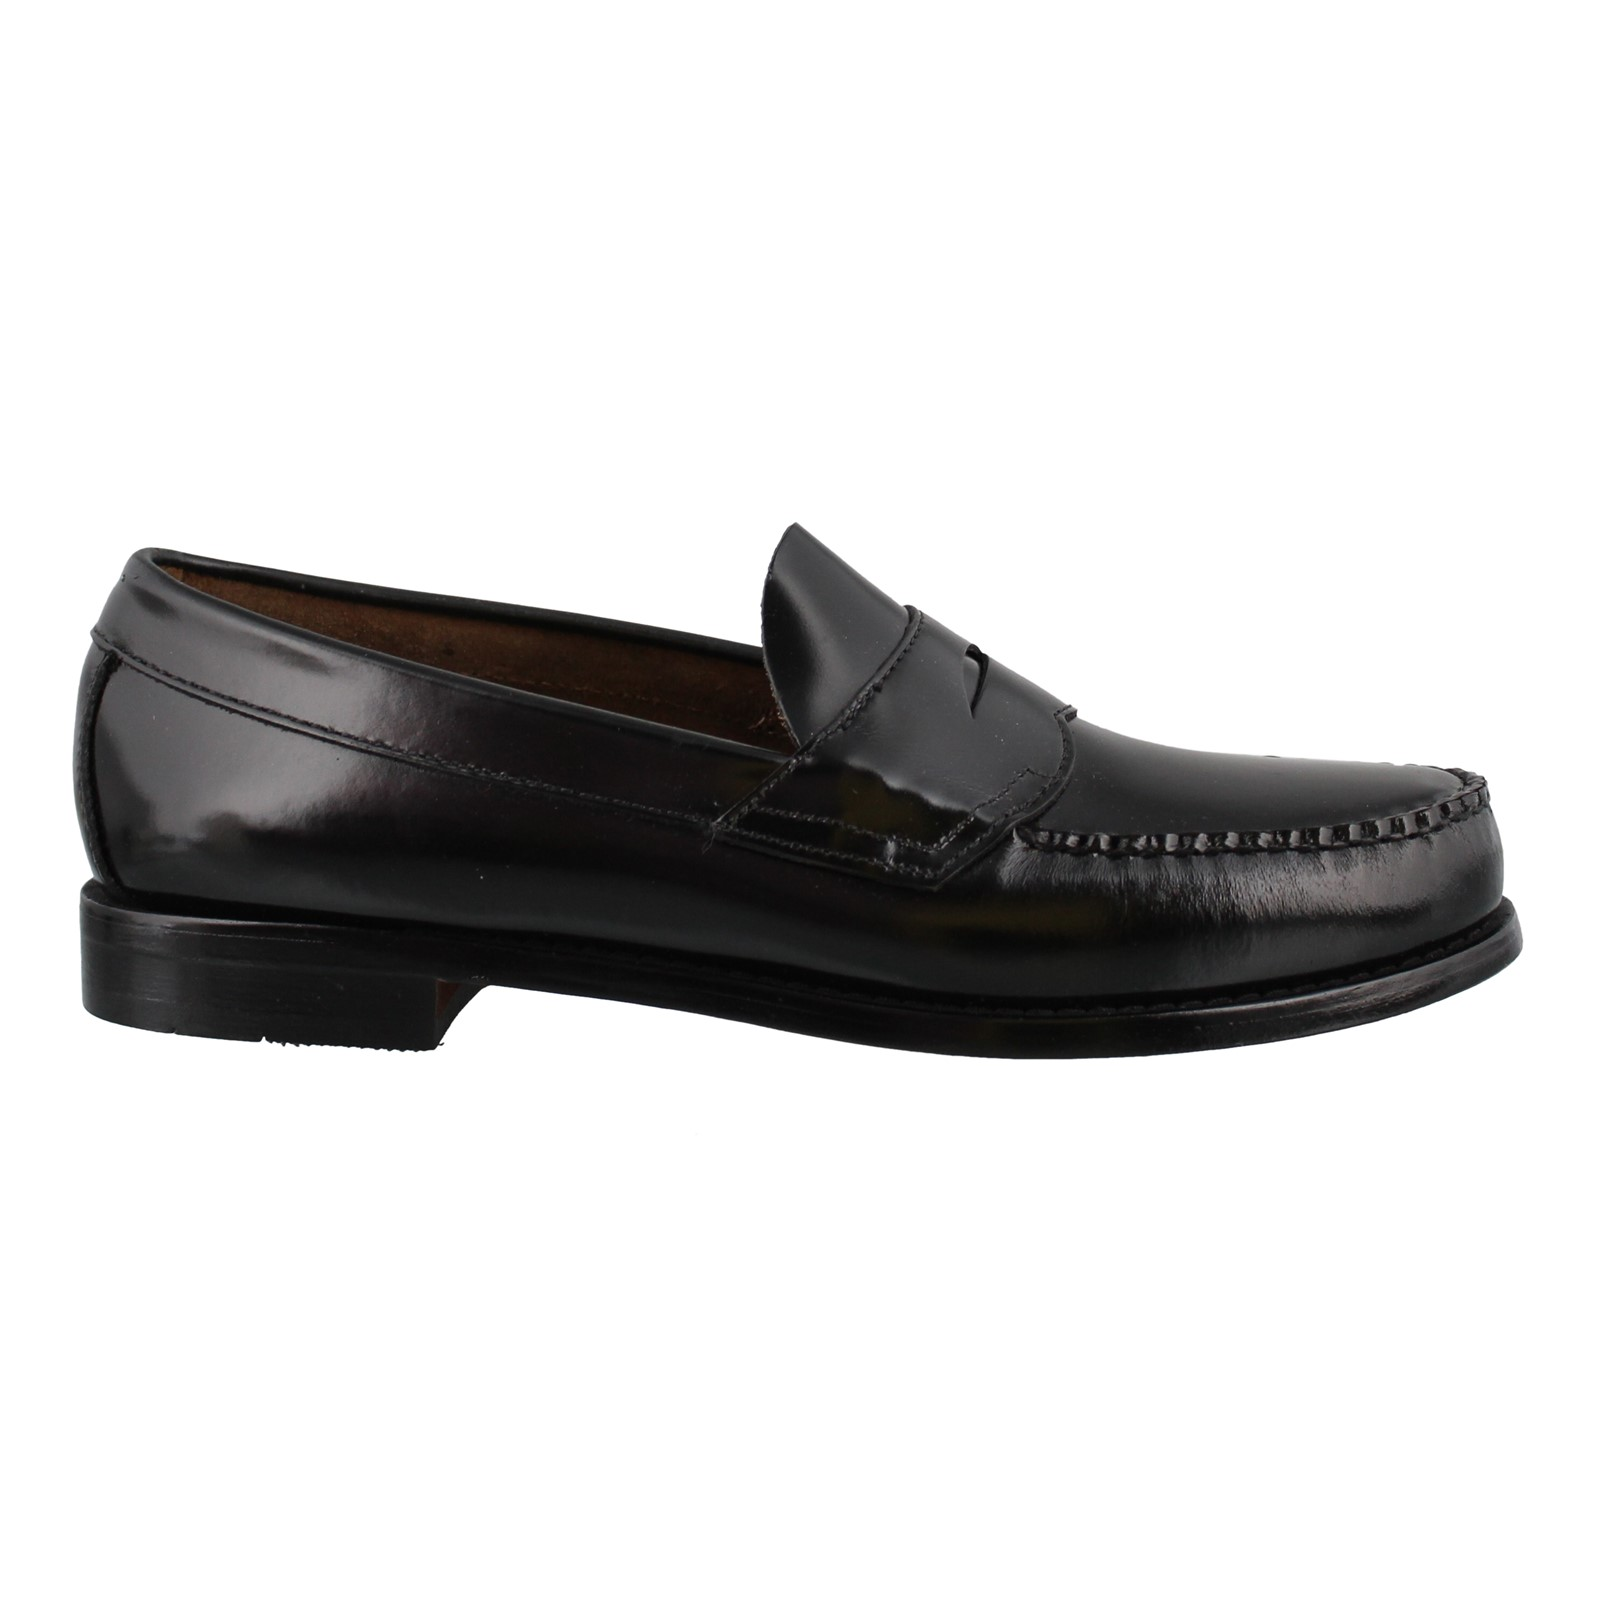 Men's GH Bass and Company, Logan Weejuns Slip on Penny Loafers